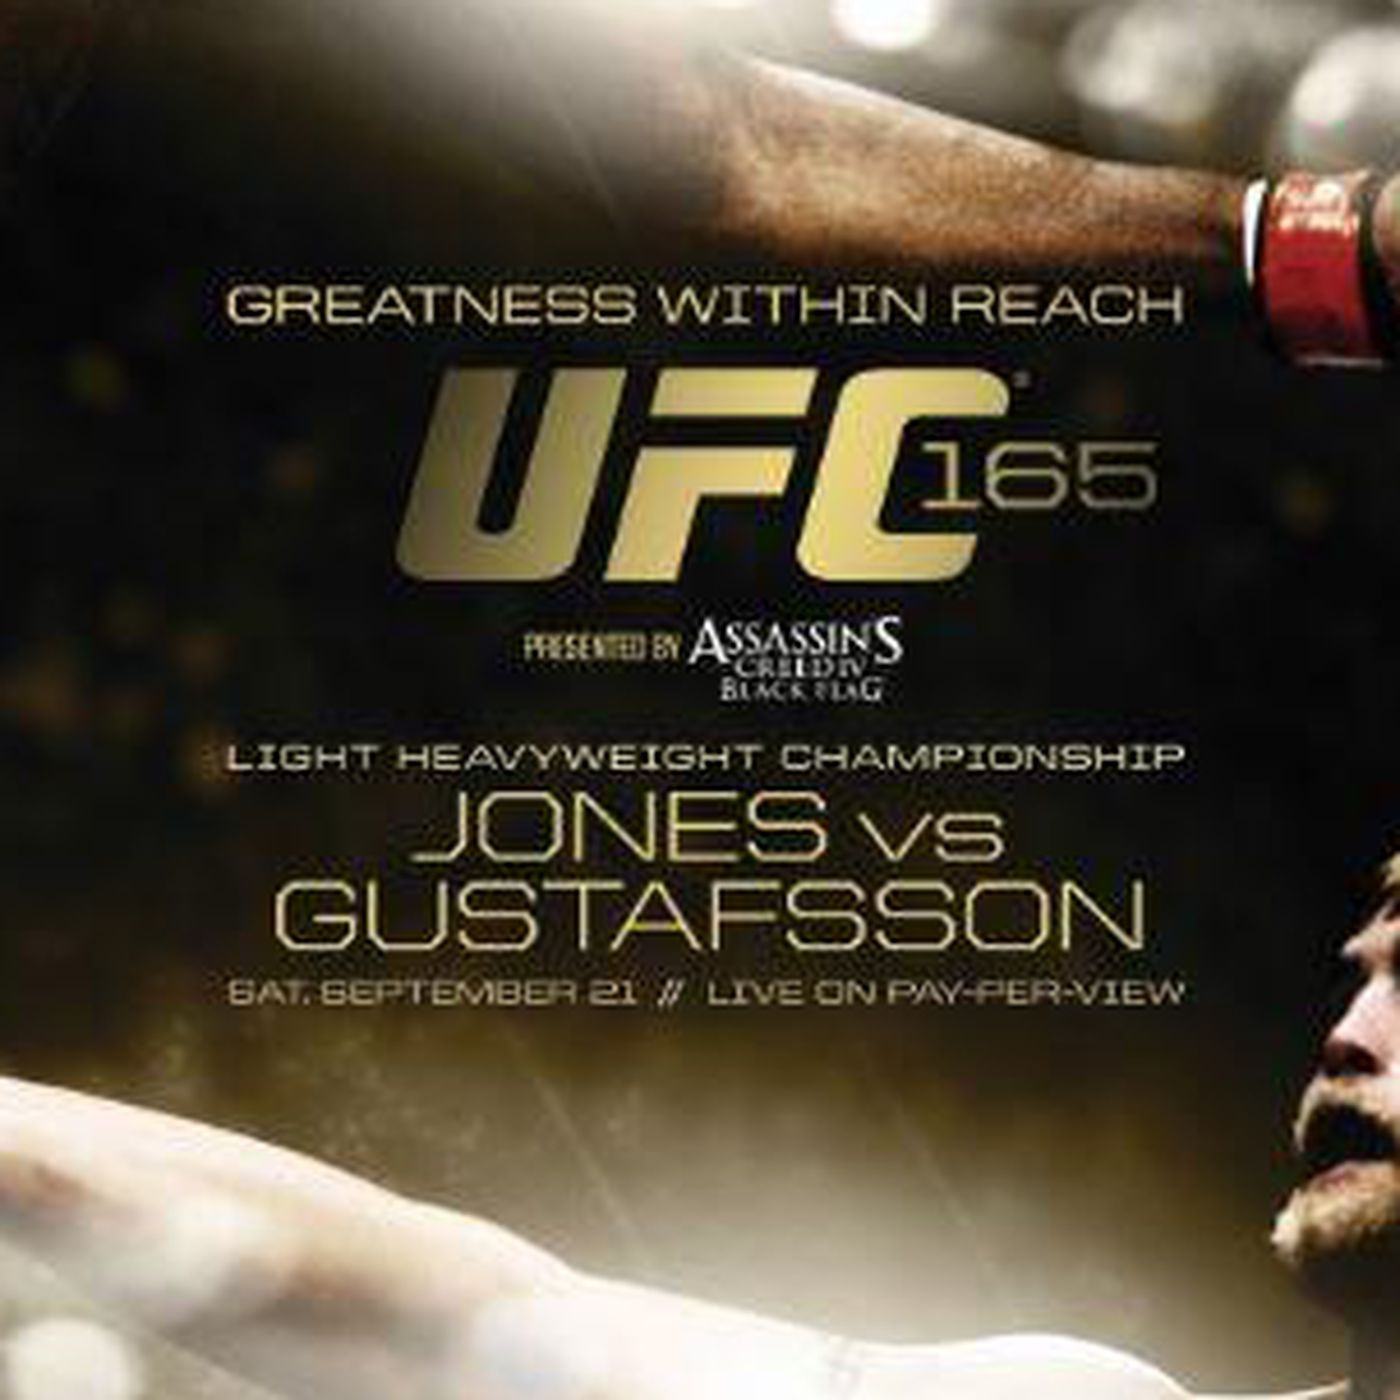 Ufc 165 betting predictions site superbowl betting games